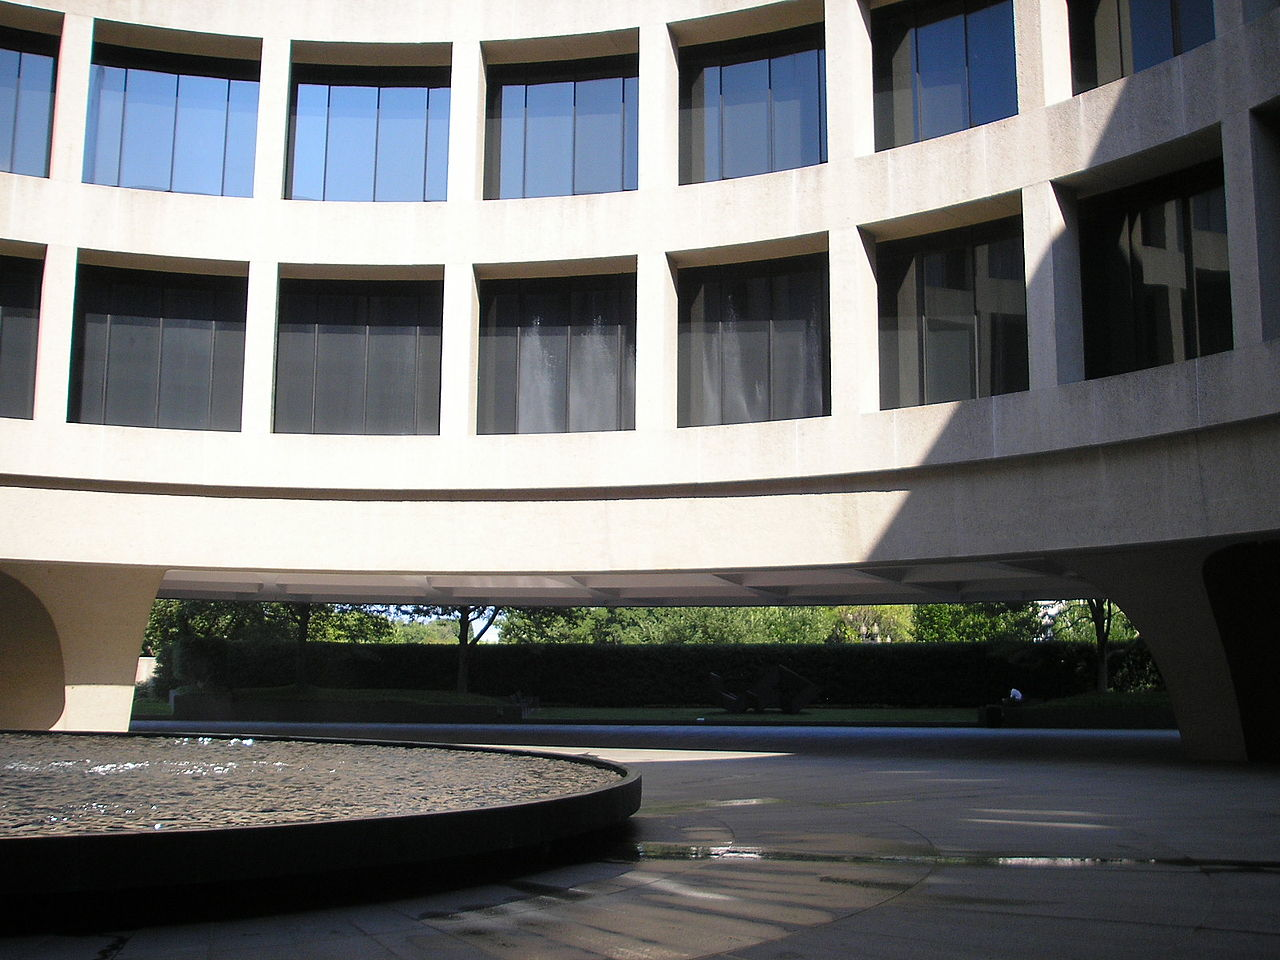 Take A Walk Through Hirshhorn Museum And Sculpture Garden